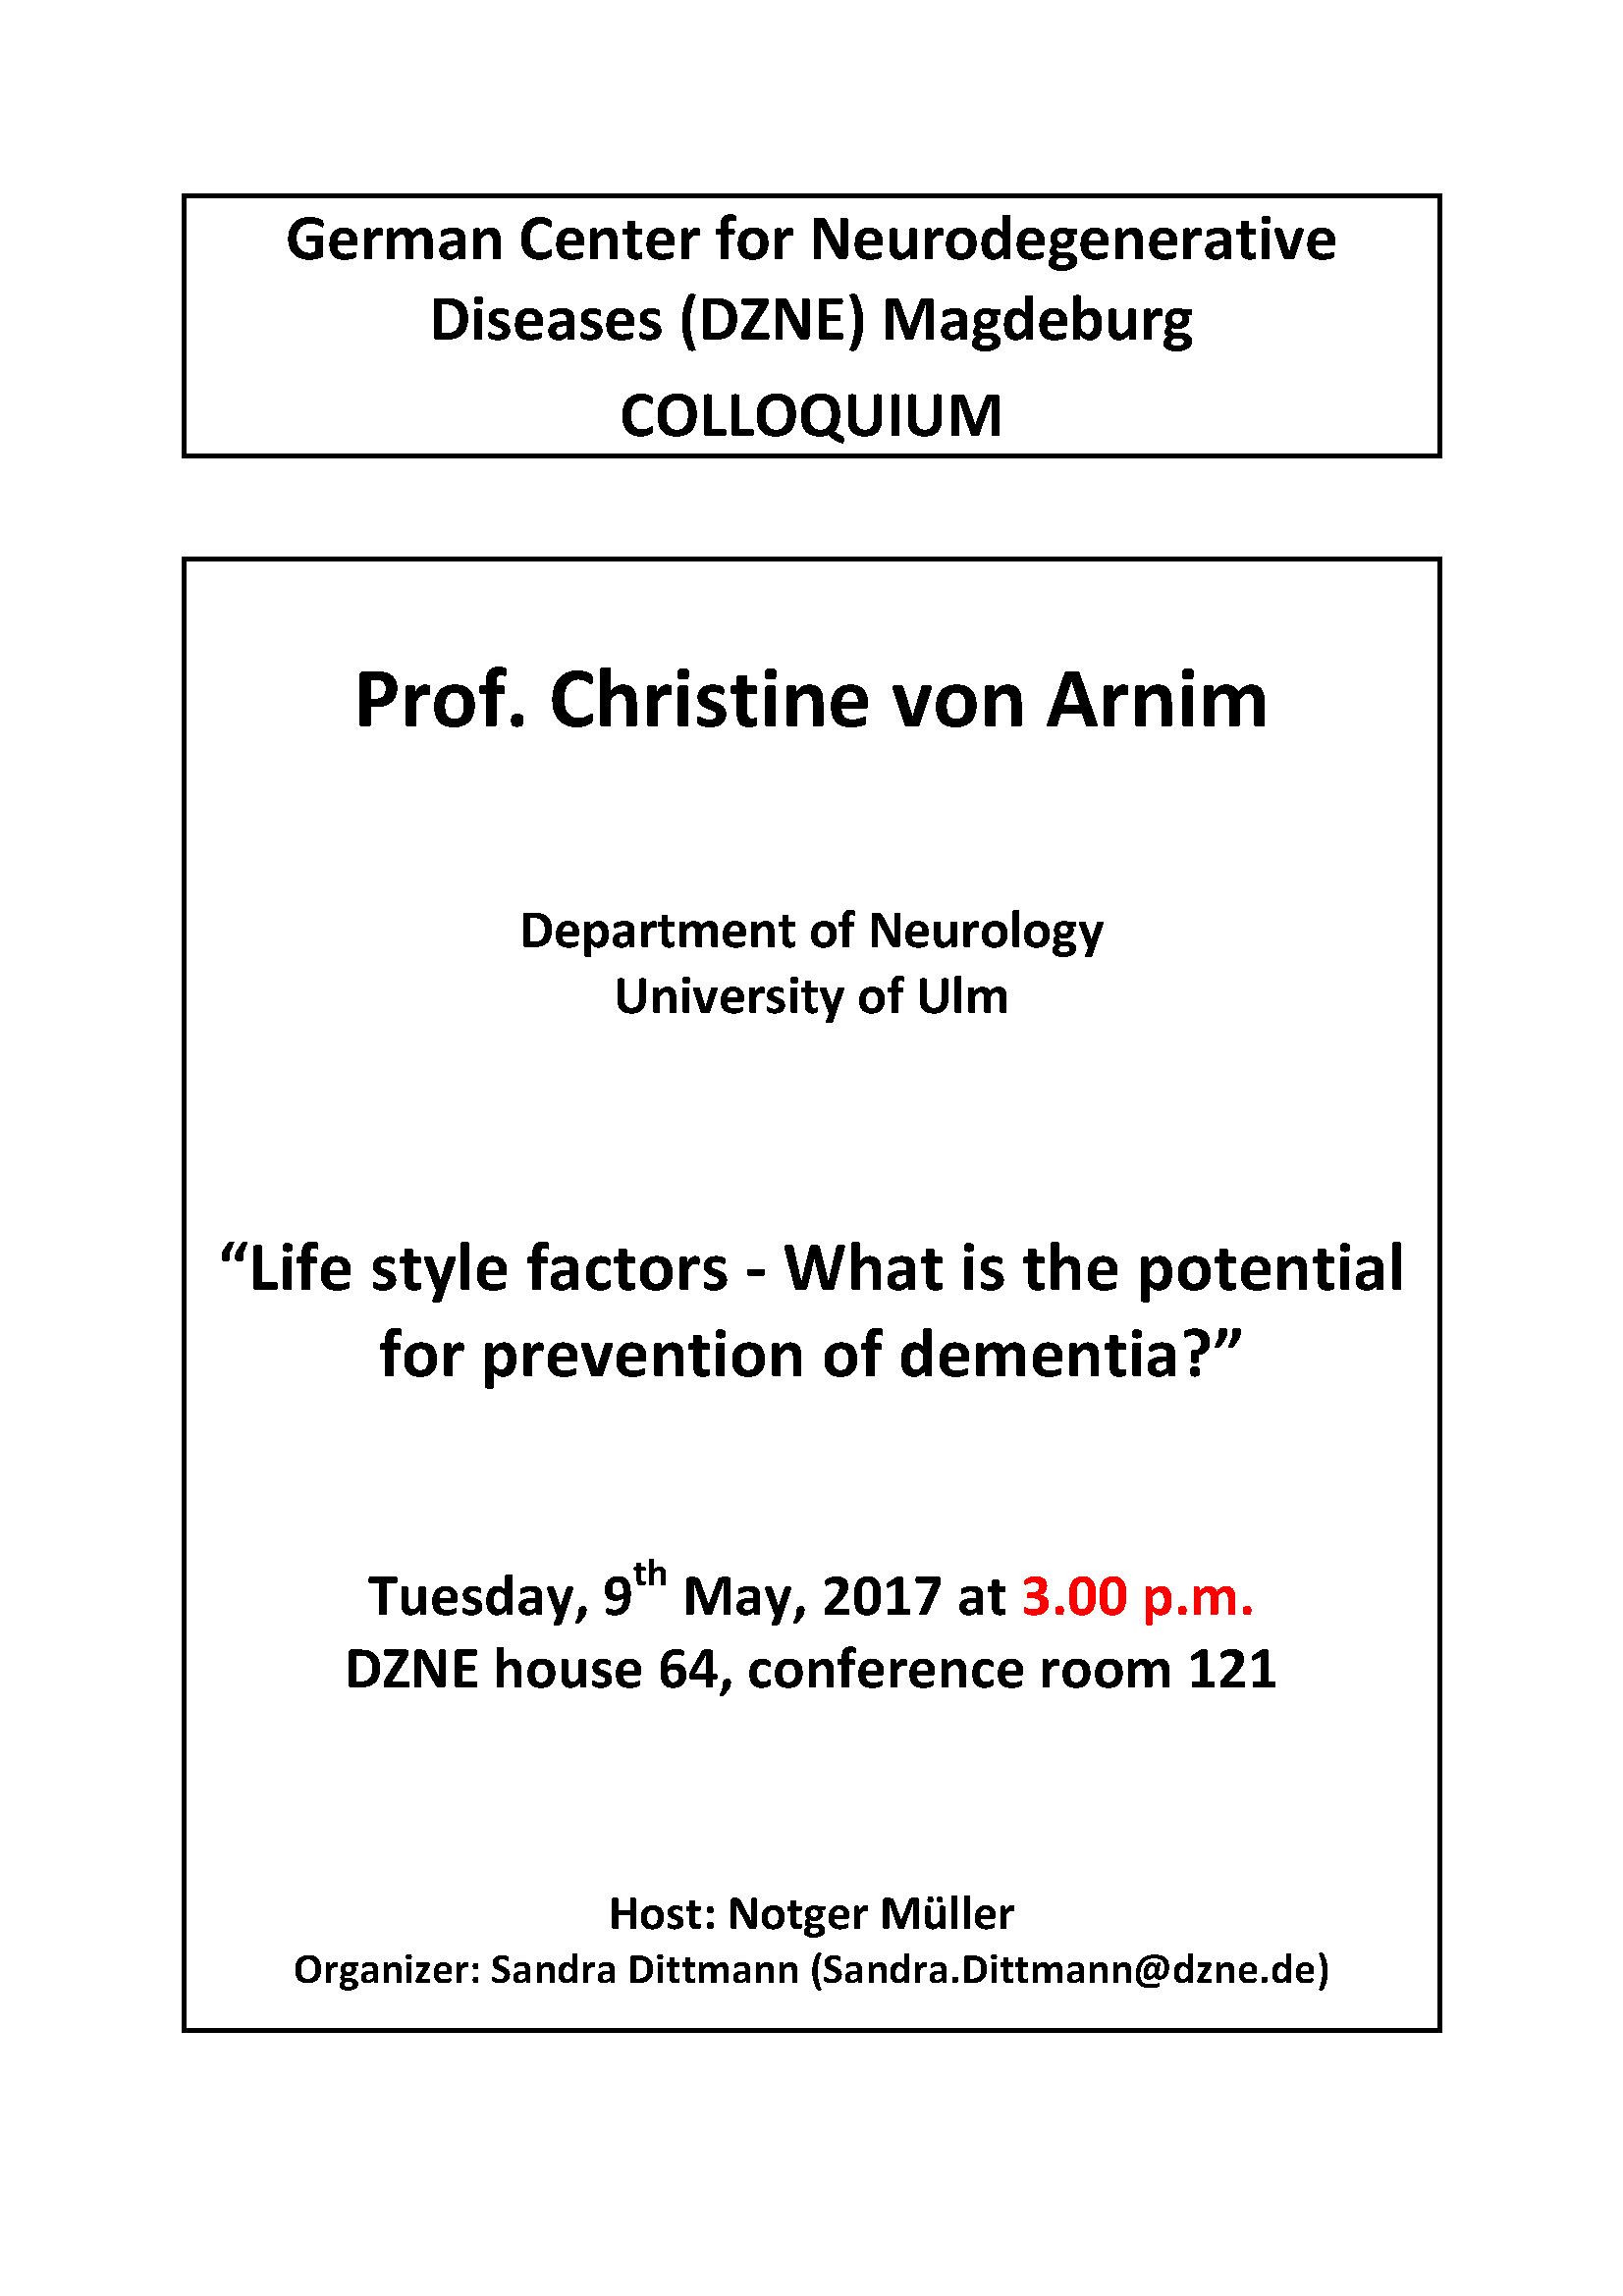 20170509 Prof. Christine von Arnim DZNE Colloquium new time